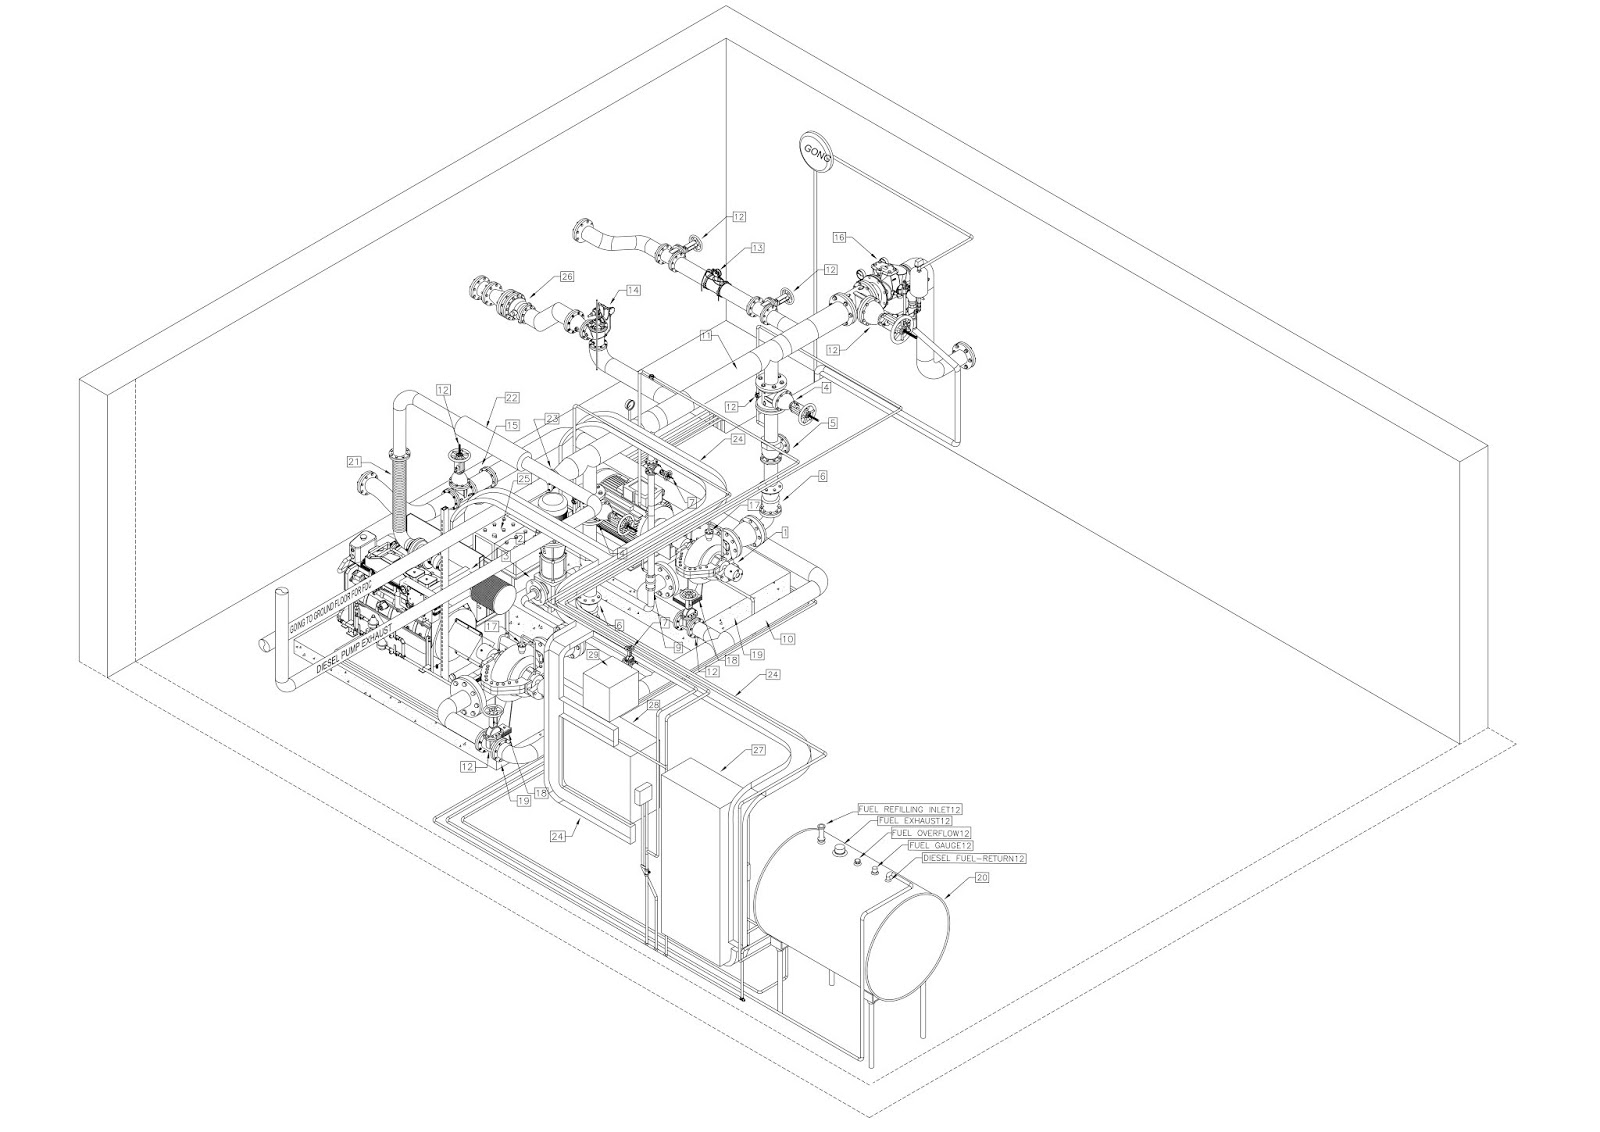 Fire Fighting Pump Room Drawings - CAD Needs